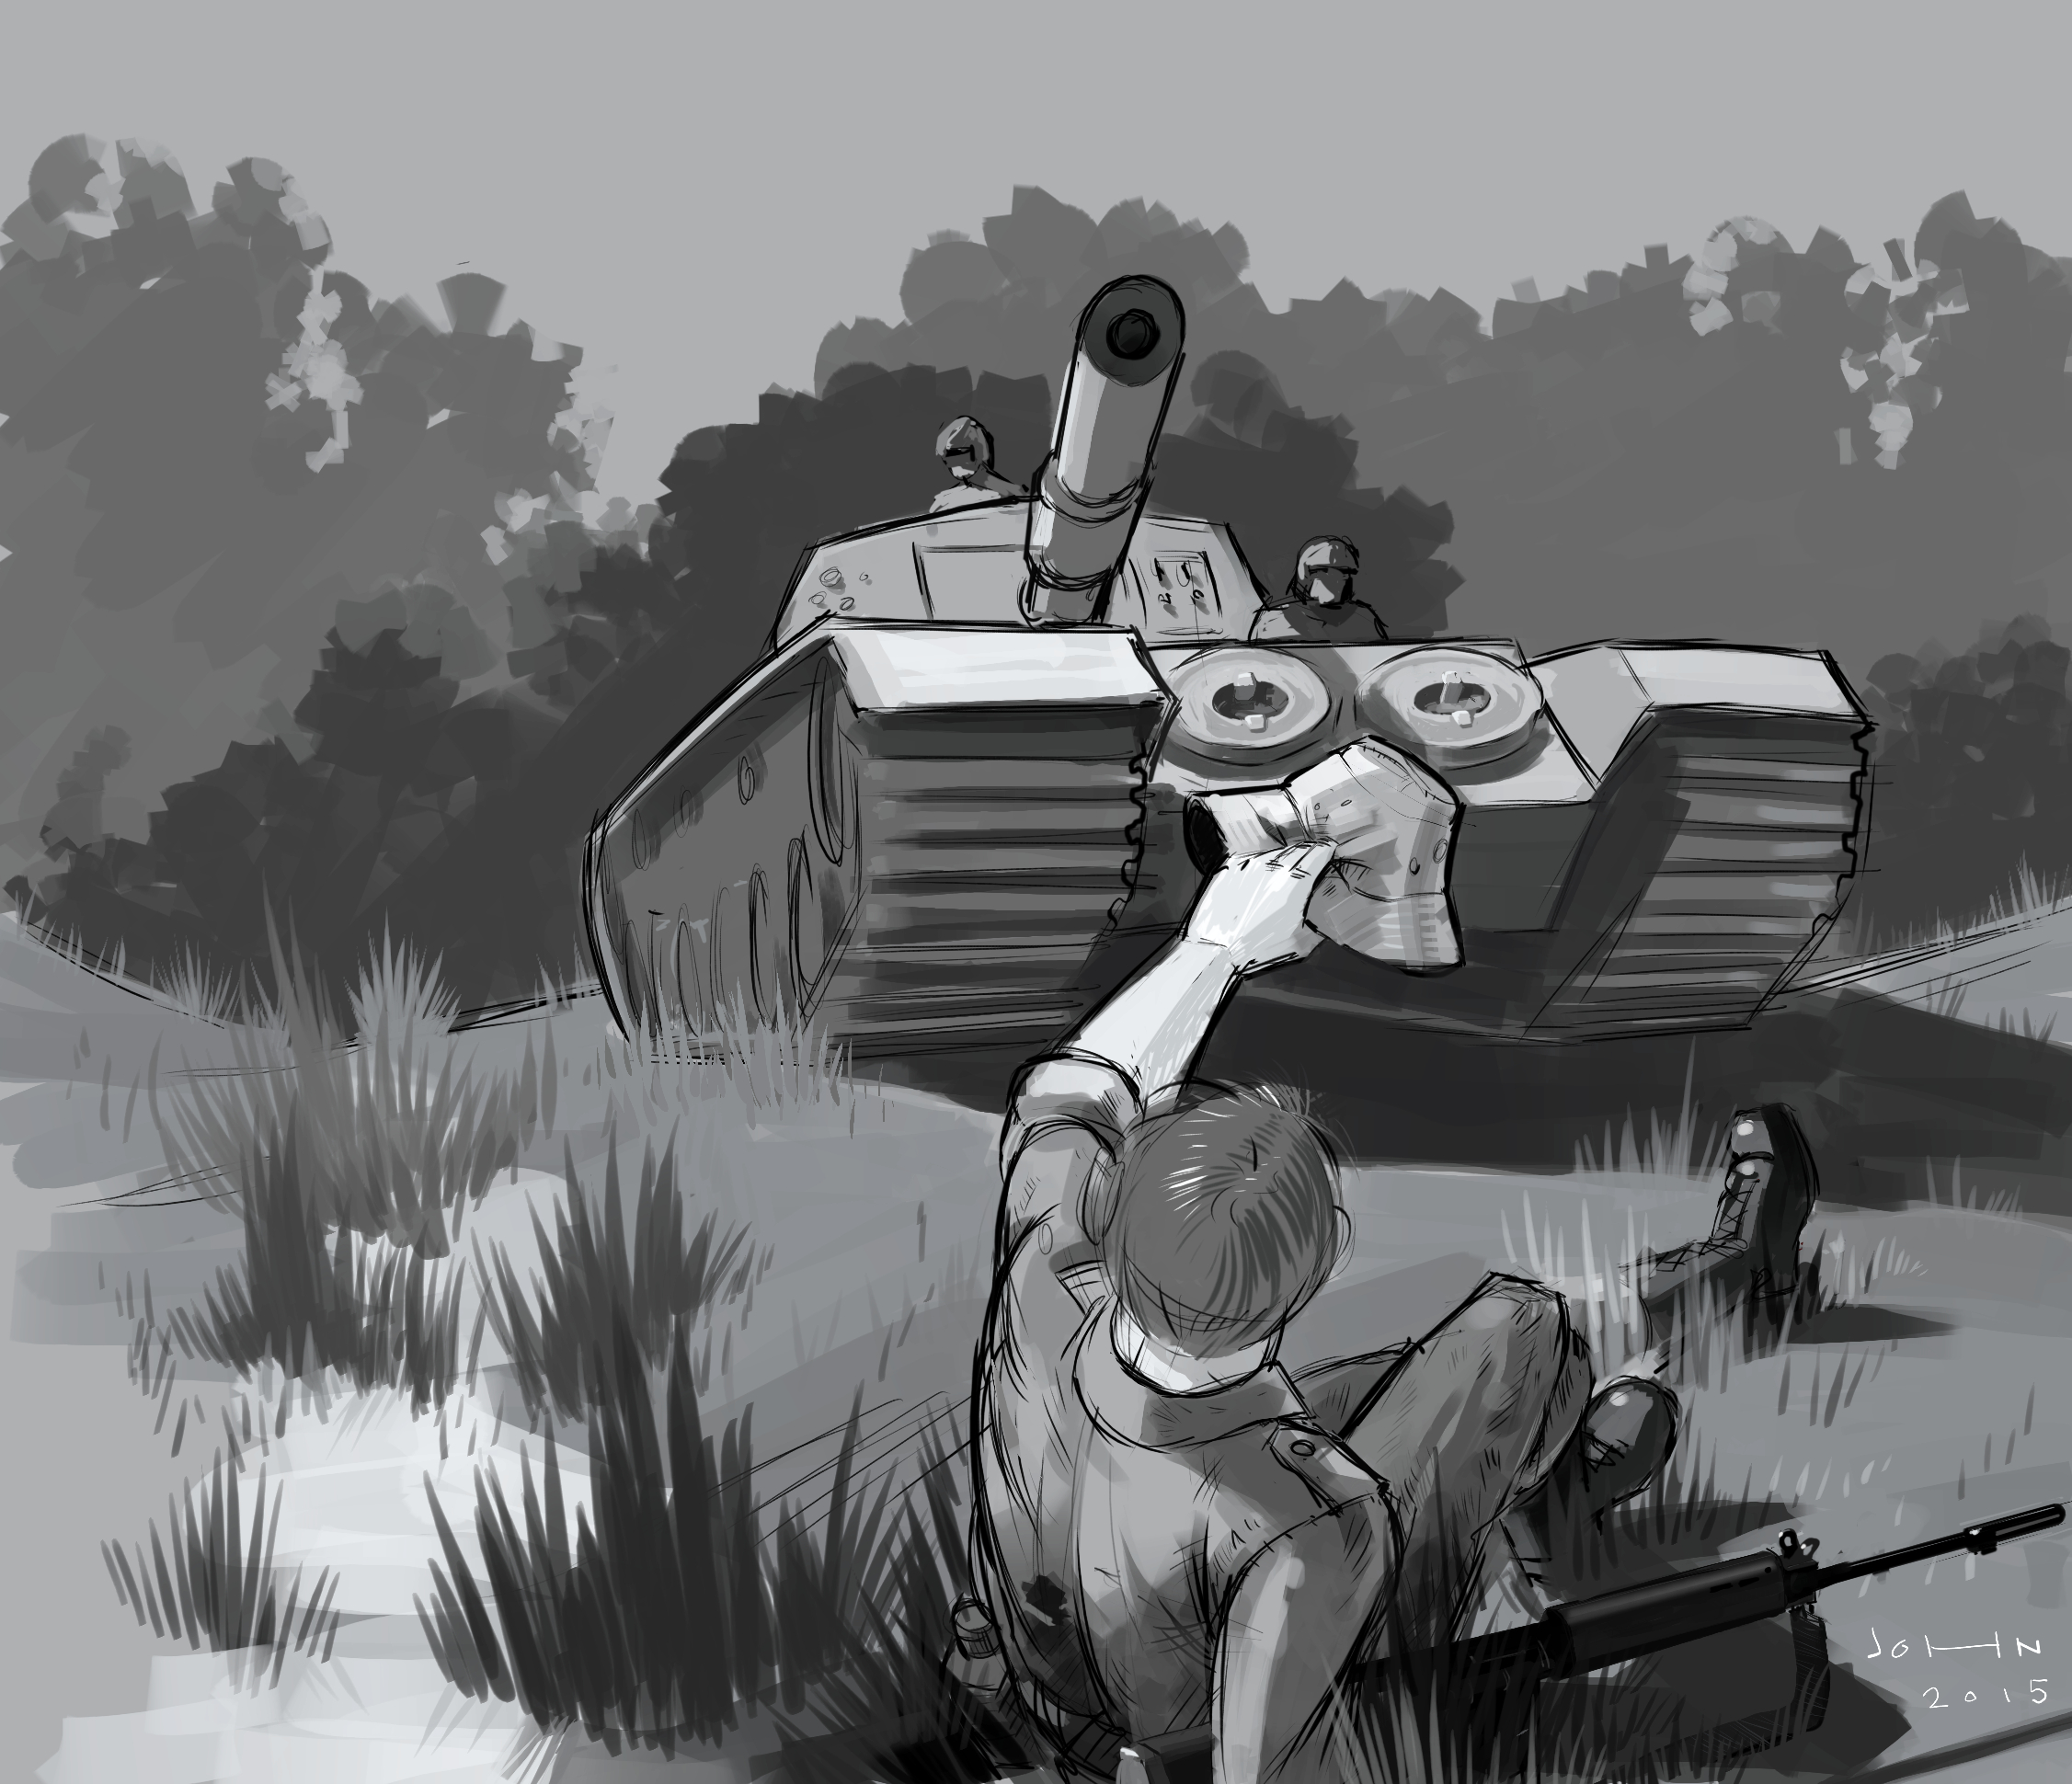 Digital illustration depicting a true event of an Australian digger's rescue in the Vietnam War.